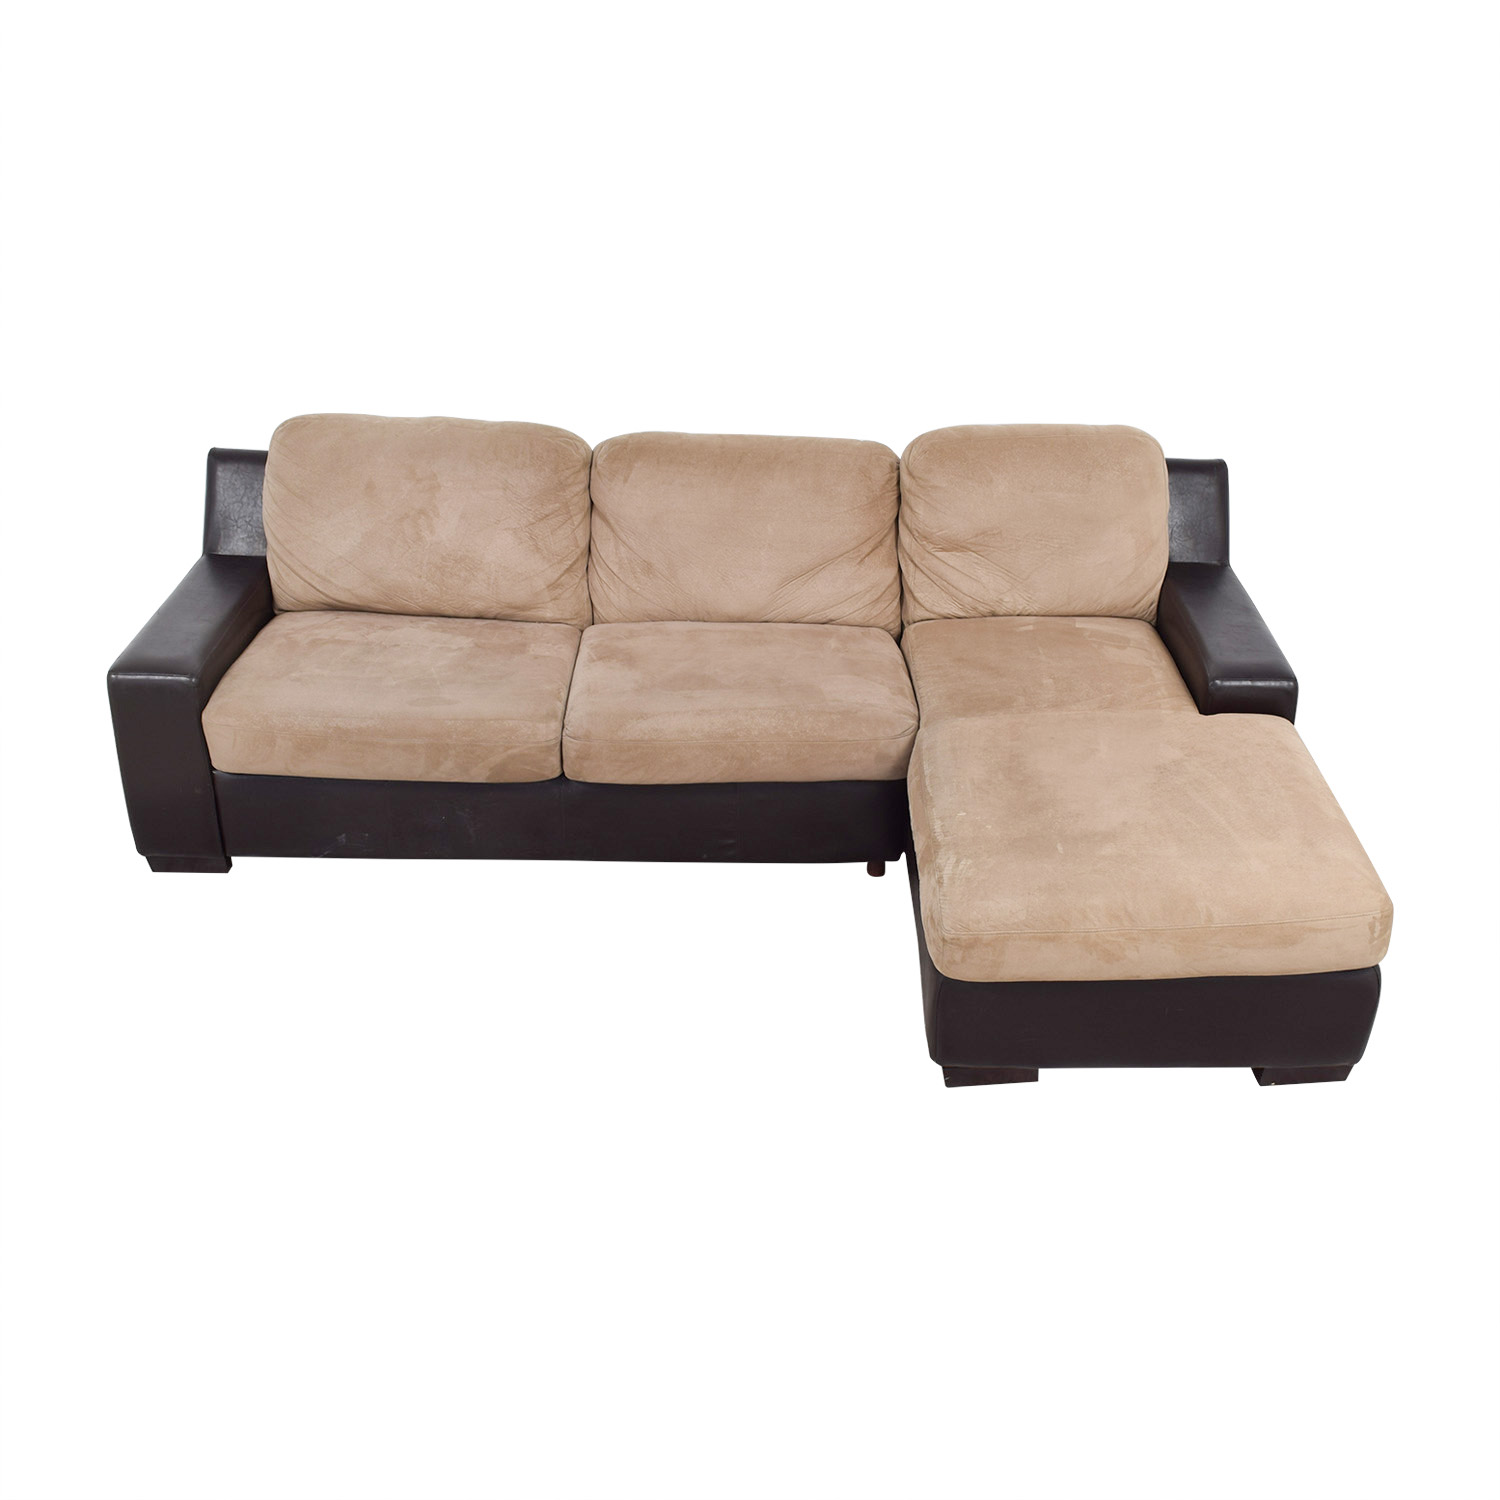 brown and beige sofa macys tufted 90 off pottery barn chaise